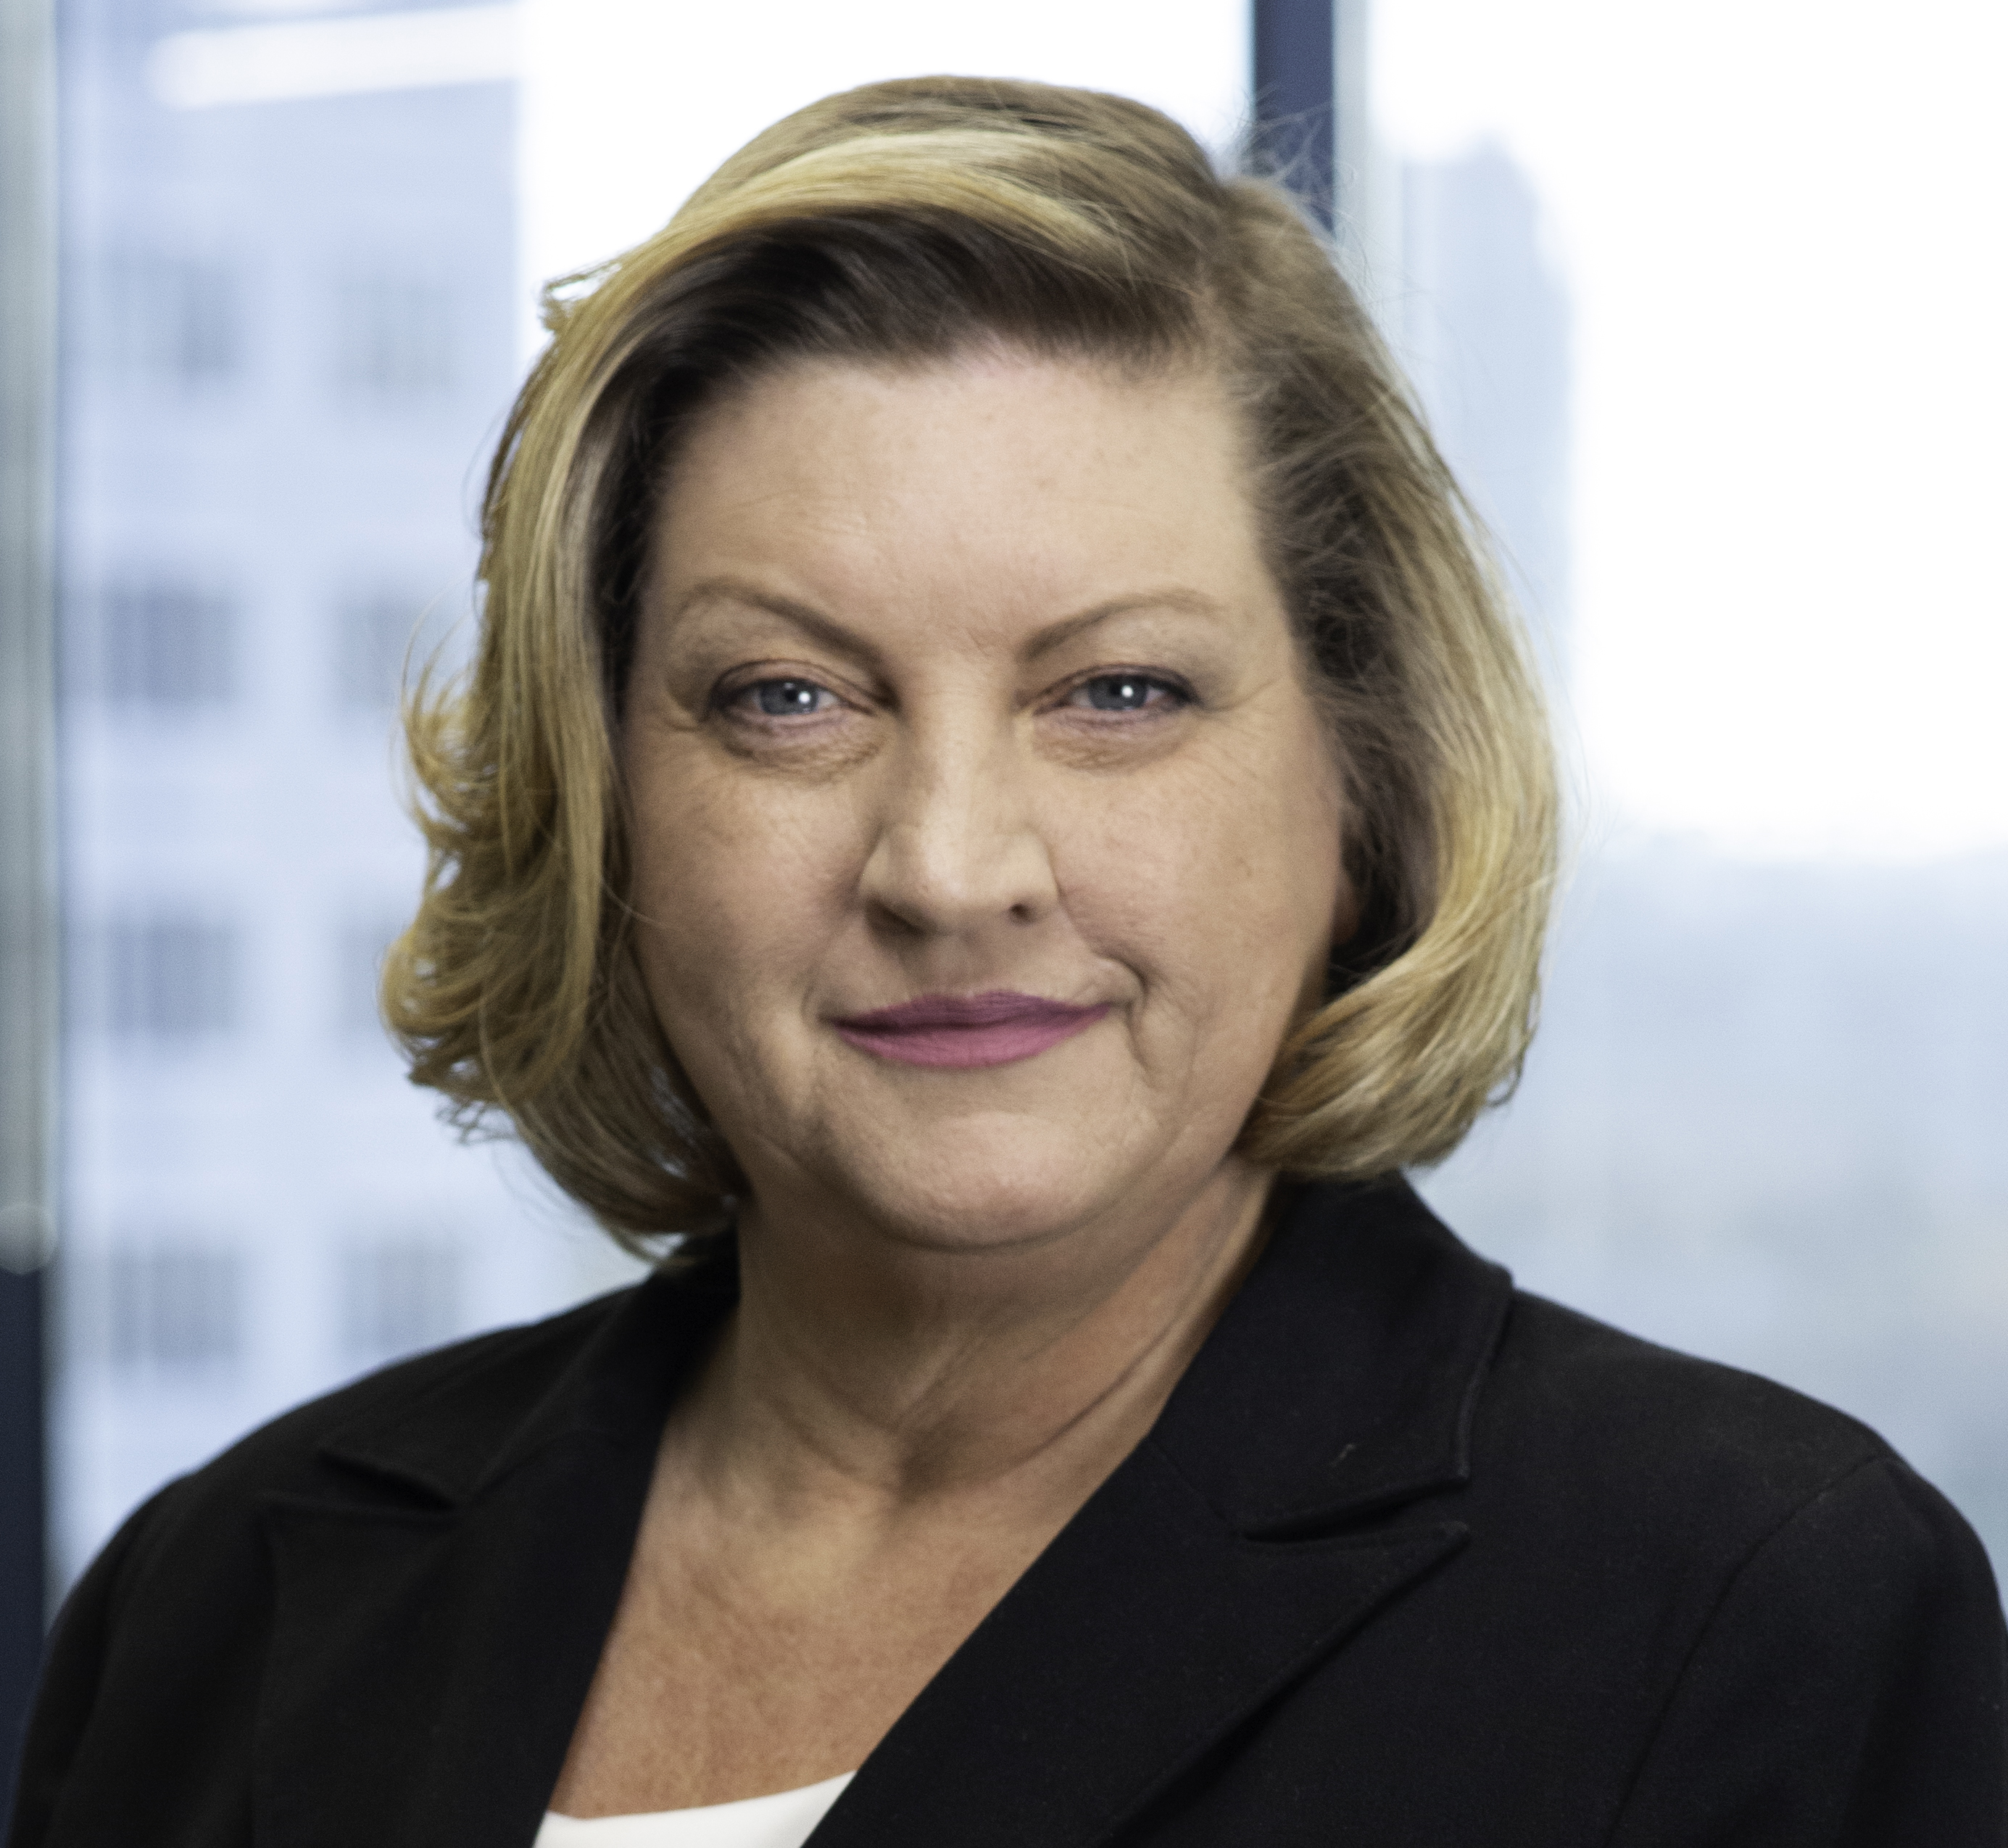 Sherry Patterson, Sr Manager of PSG at Calyx